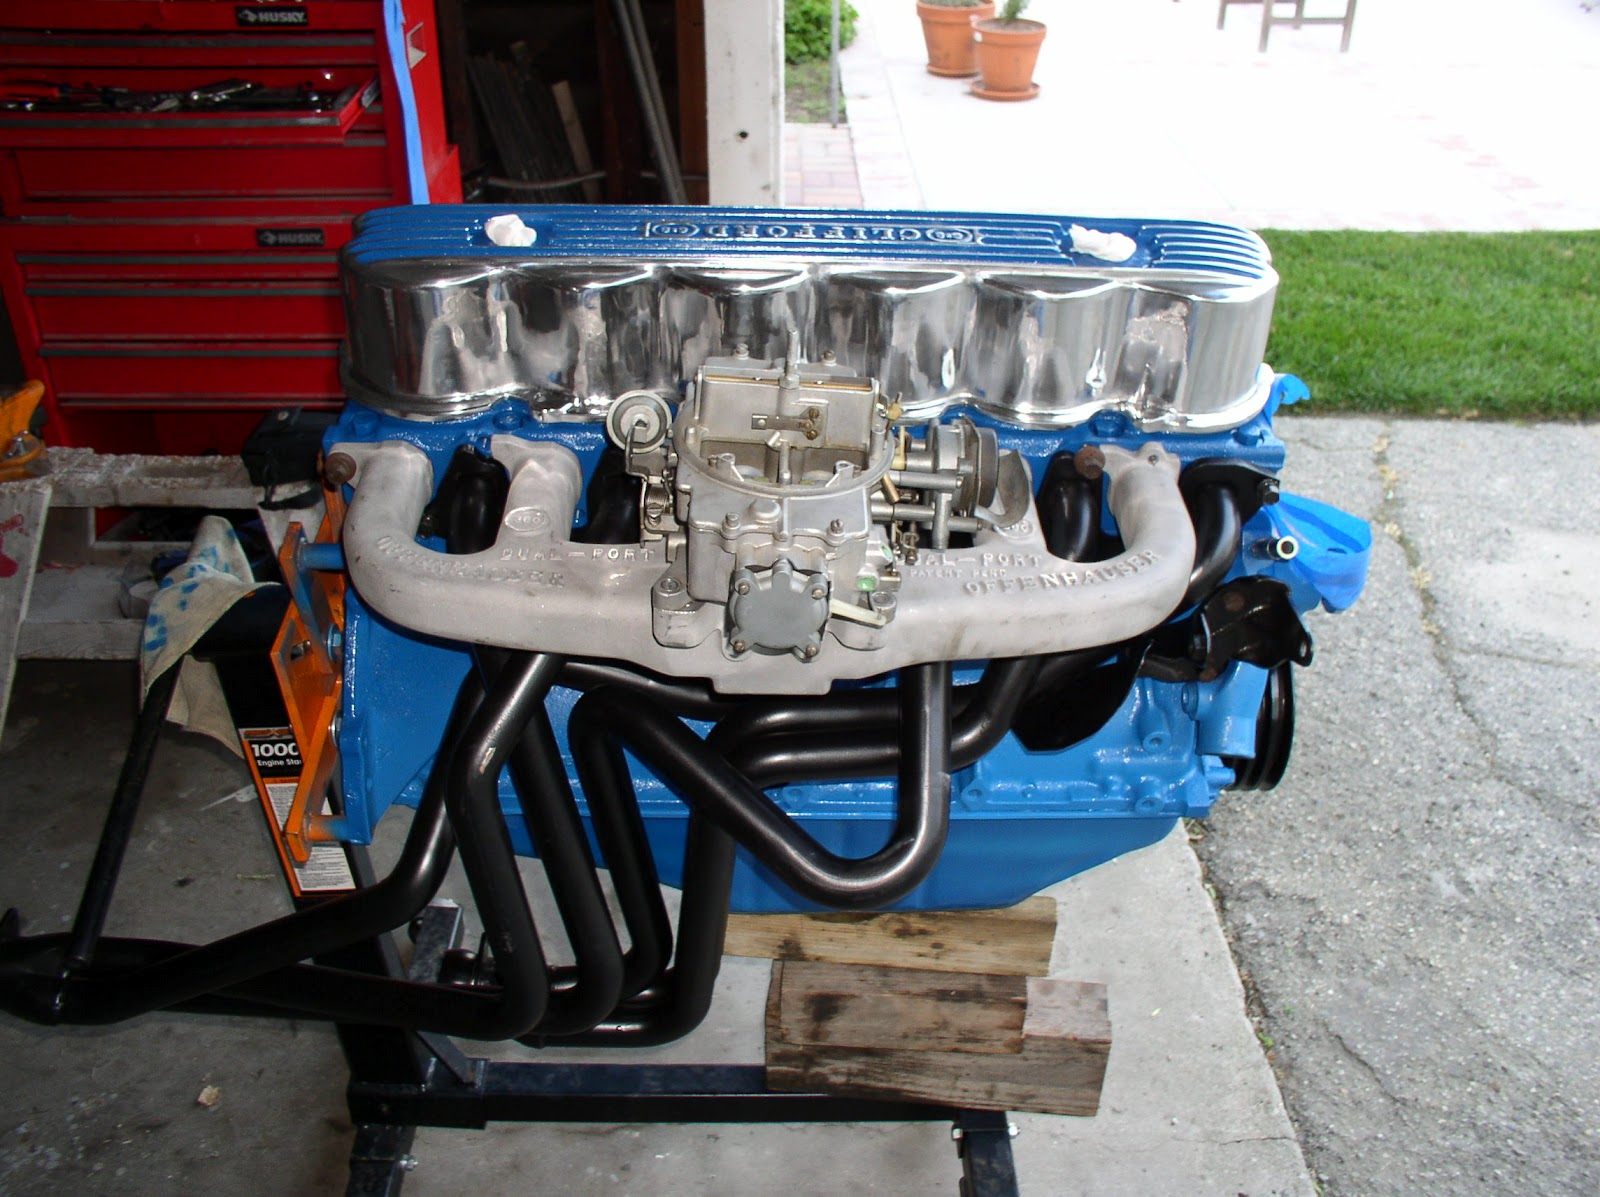 Ford 250 Inline 6 Head http://myautoarticles.blogspot.com/2012/04/normal-0-false-false-false-en-us-x-none.html